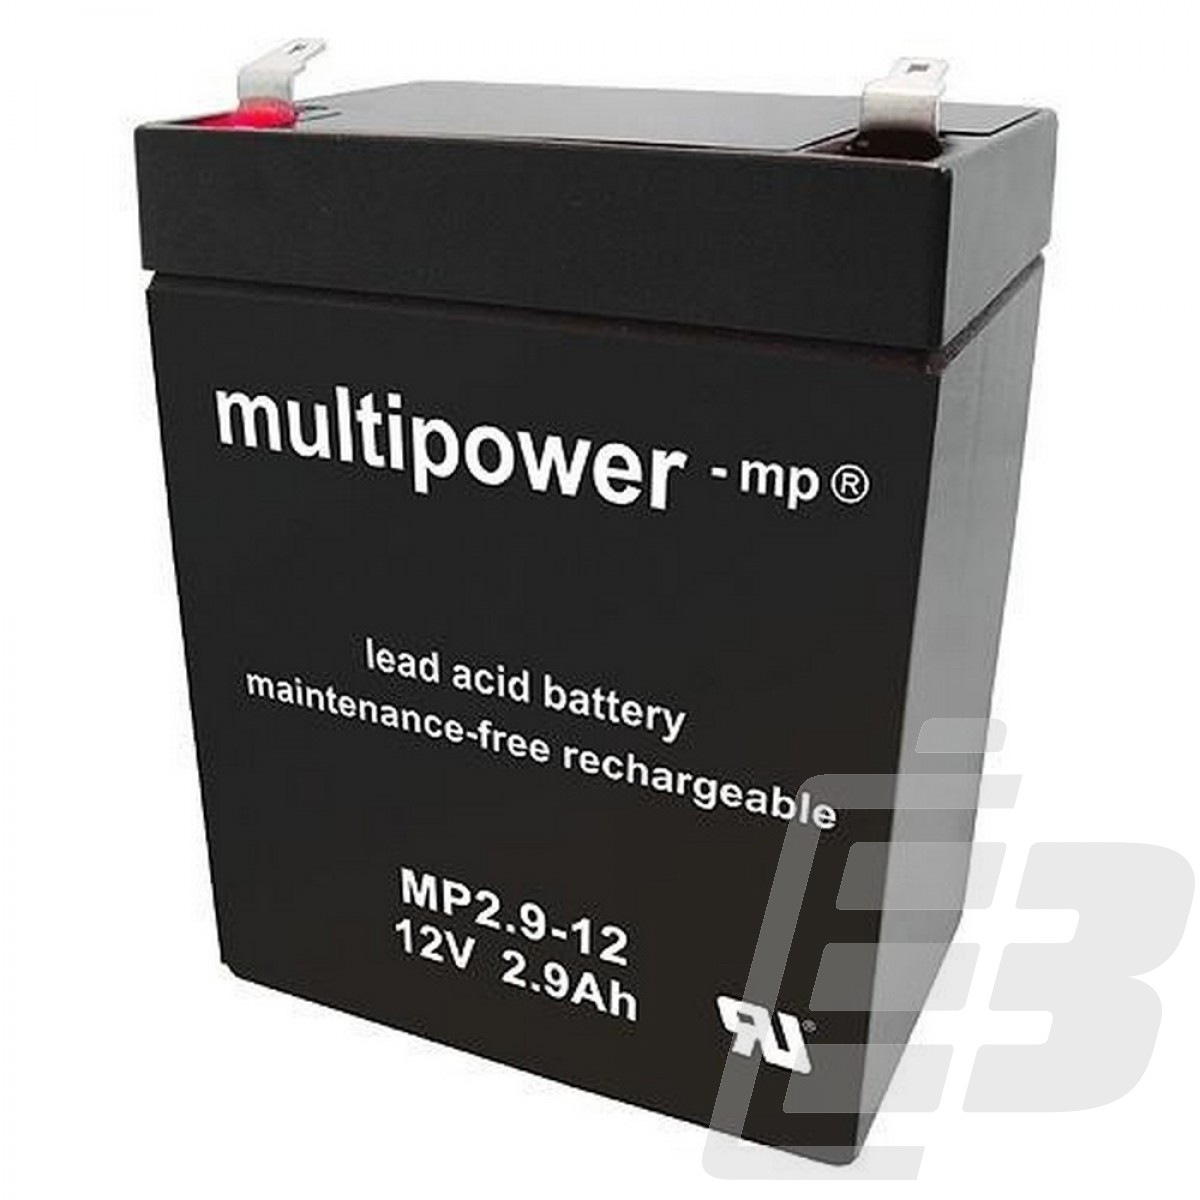 Multipower Lead Acid Battery 12V 2,9Ah